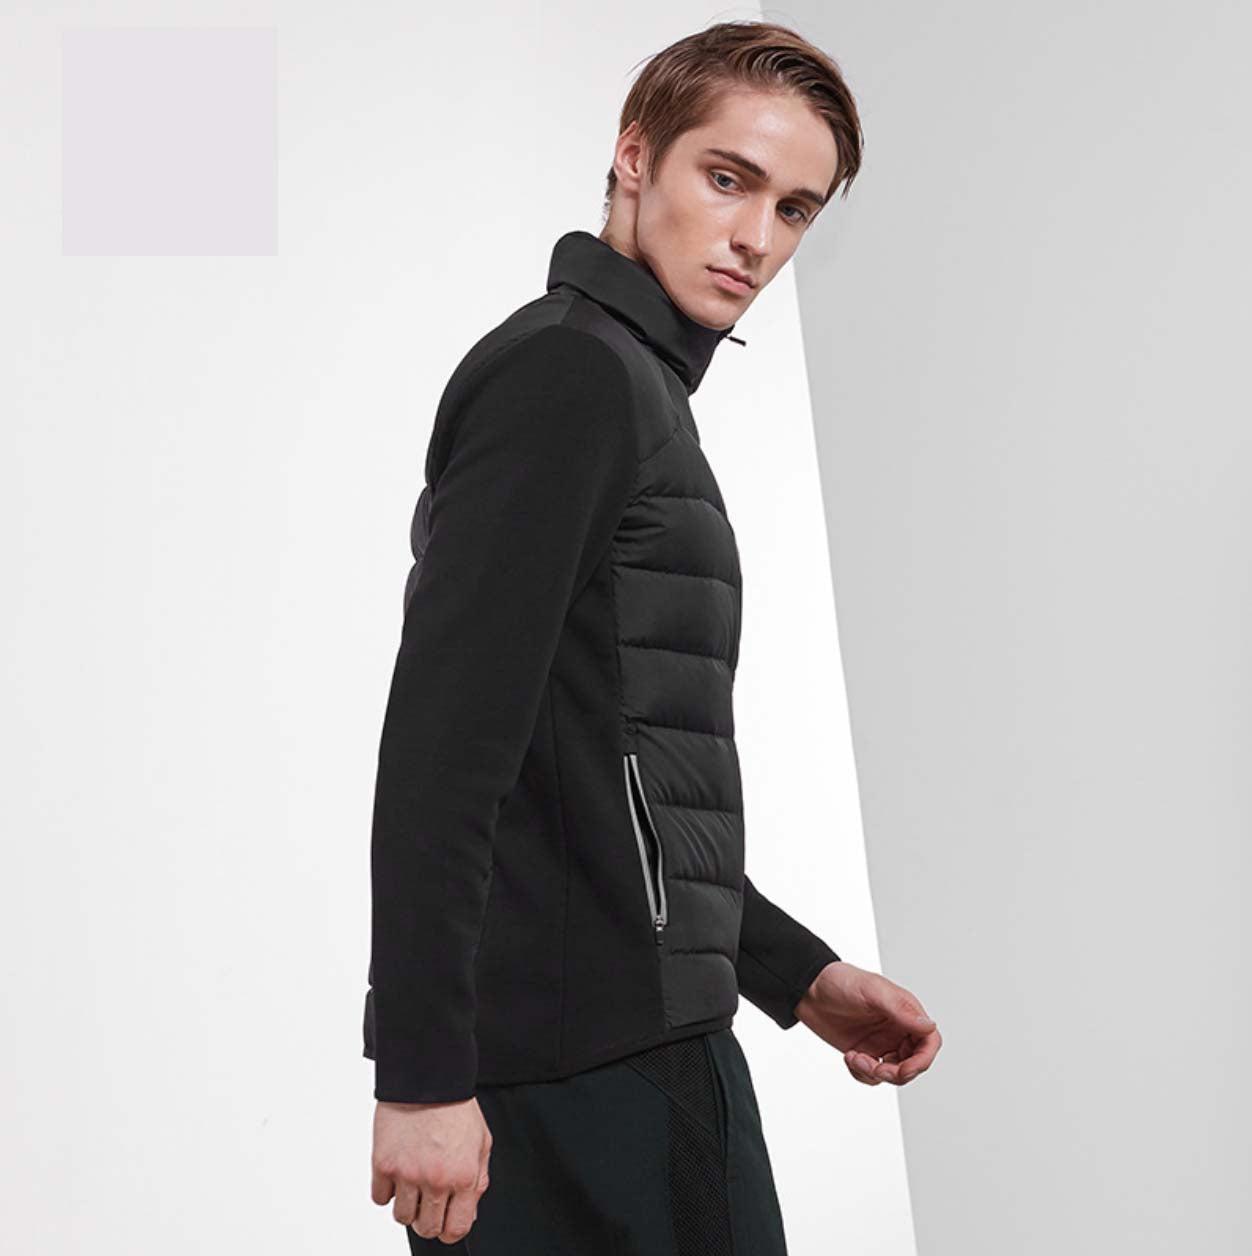 Comfy Black Stand Collar Long Sleeves Front Zip Up Closure Side Pocket Jacket